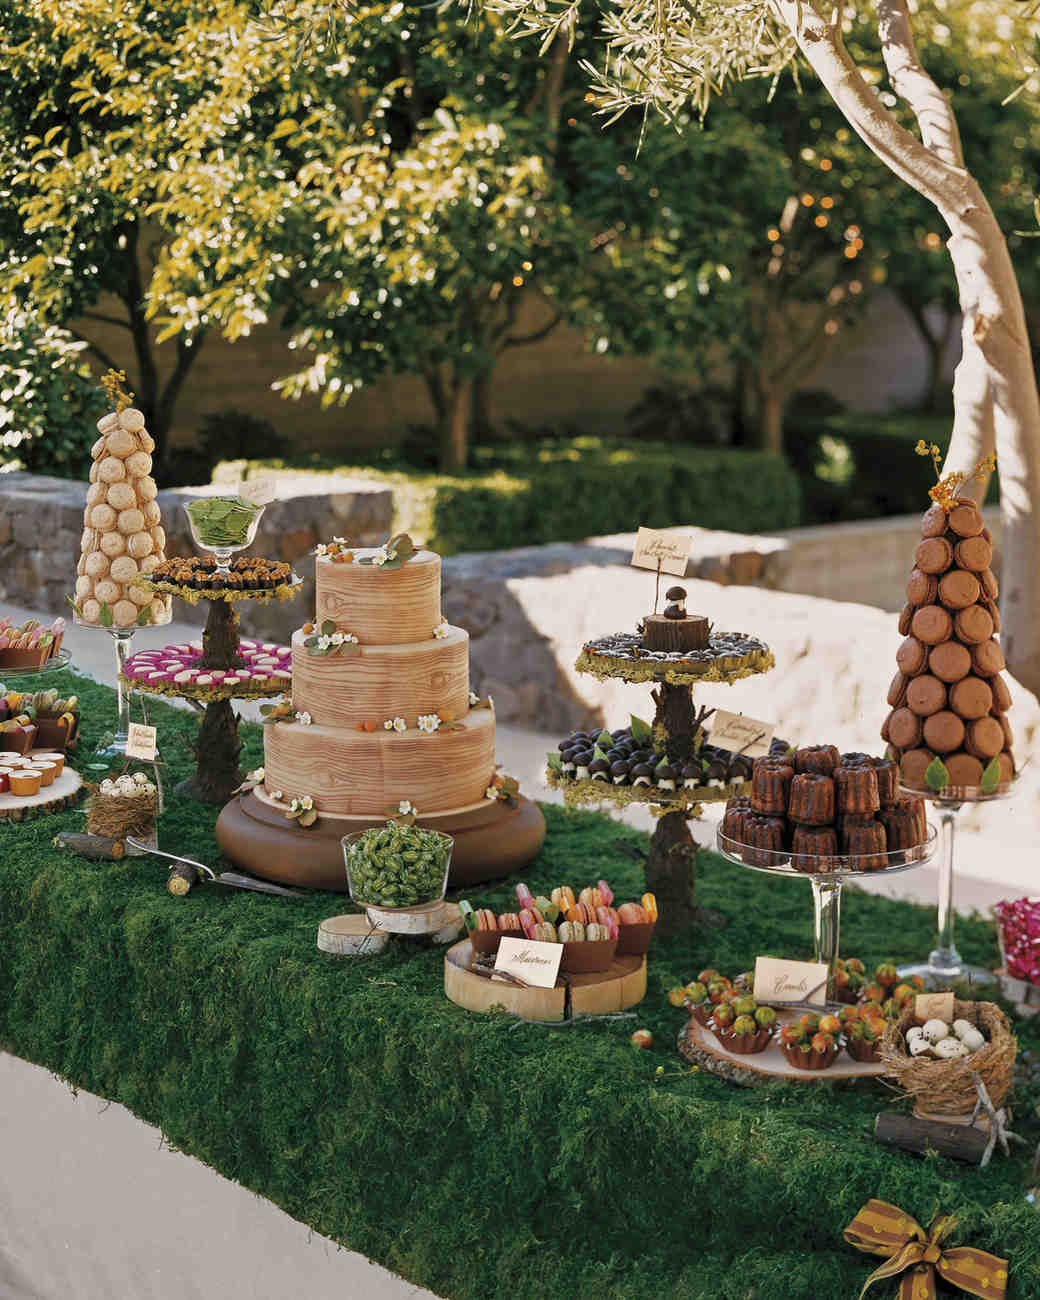 Wedding Sweet Table: 39 Amazing Dessert Tables From Real Weddings